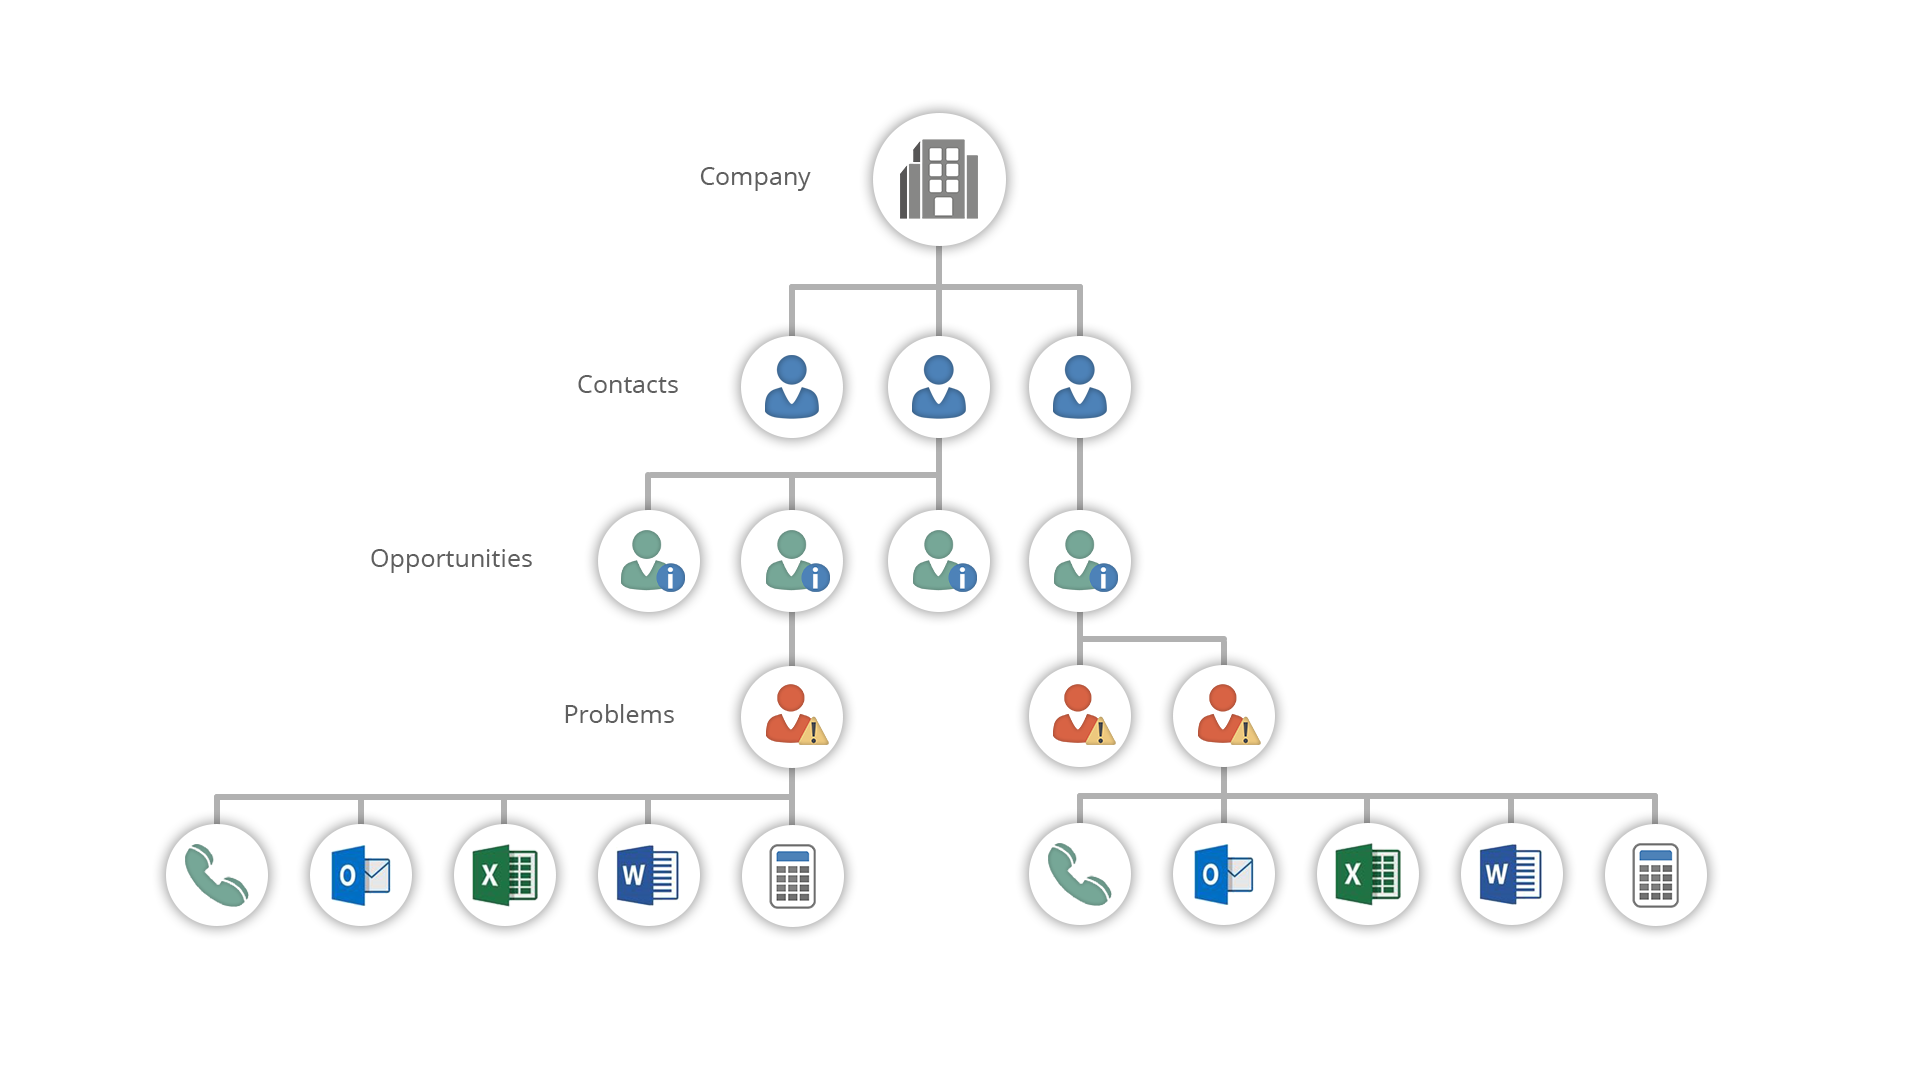 Standard CRM Hierarchy in Prospect